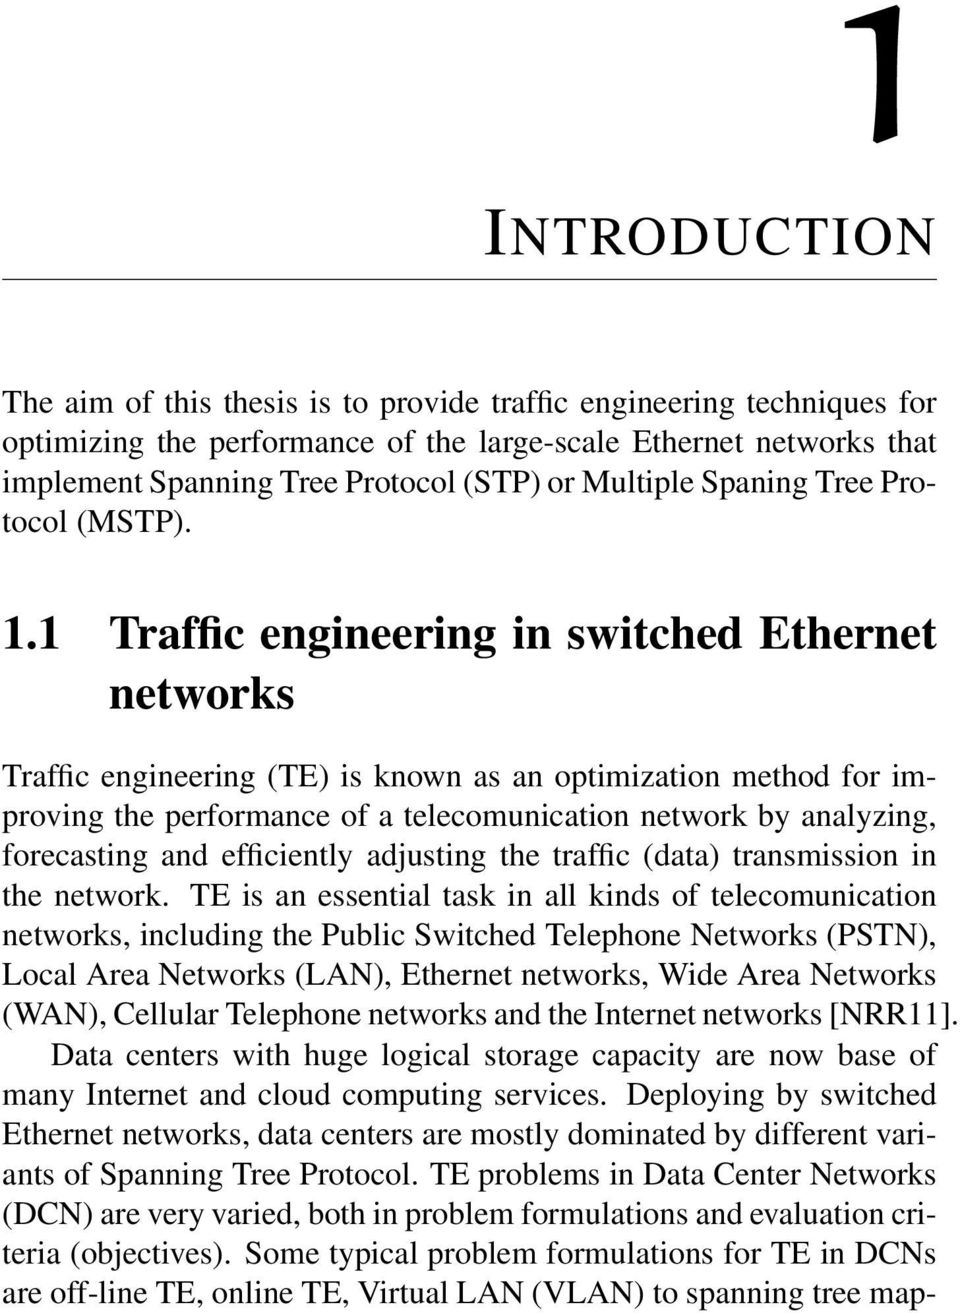 1 Traffic engineering in switched Ethernet networks Traffic engineering (TE) is known as an optimization method for improving the performance of a telecomunication network by analyzing, forecasting